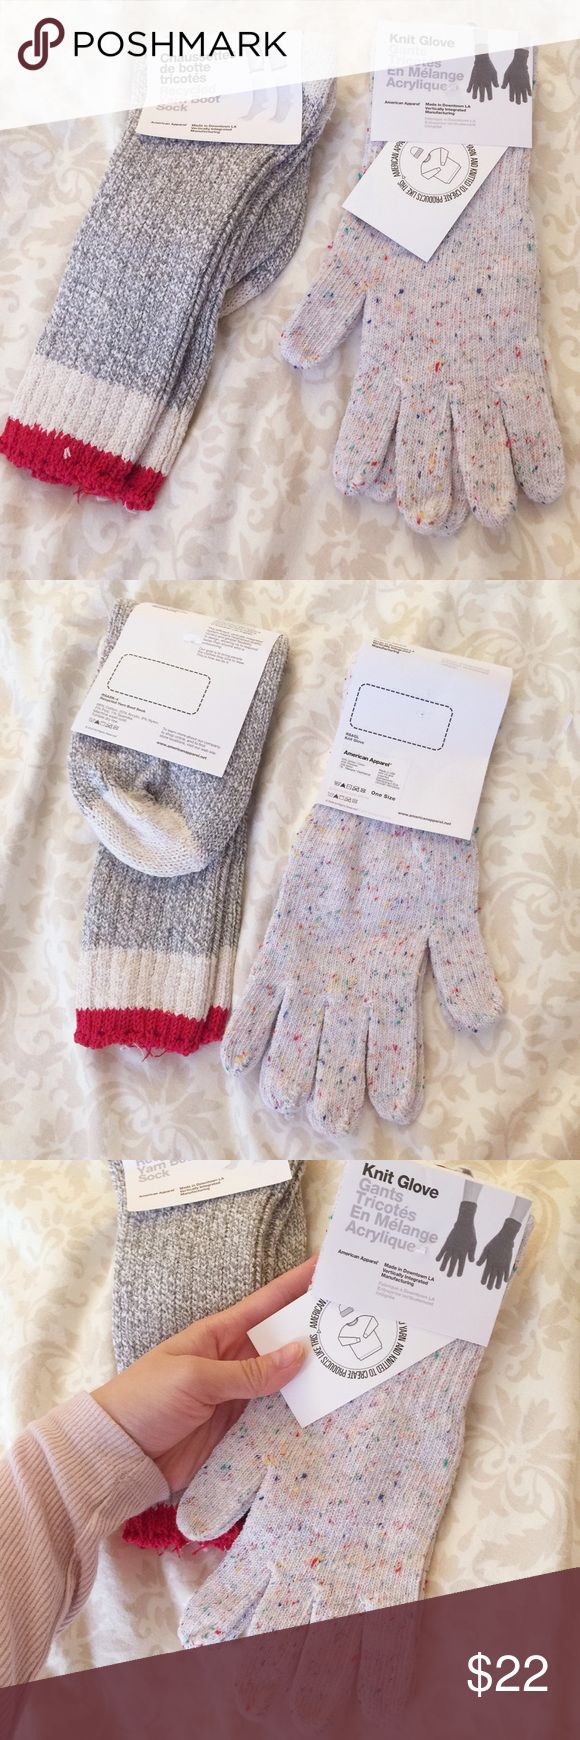 American Apparel bundle❤️ Bundle includes: Unisex Acrylic Blend Knit Glove(White Confetti, one size), Boot sock(Heather Grey, one size). All authentic American Apparel, All new with the tags. American Apparel Accessories Gloves & Mittens